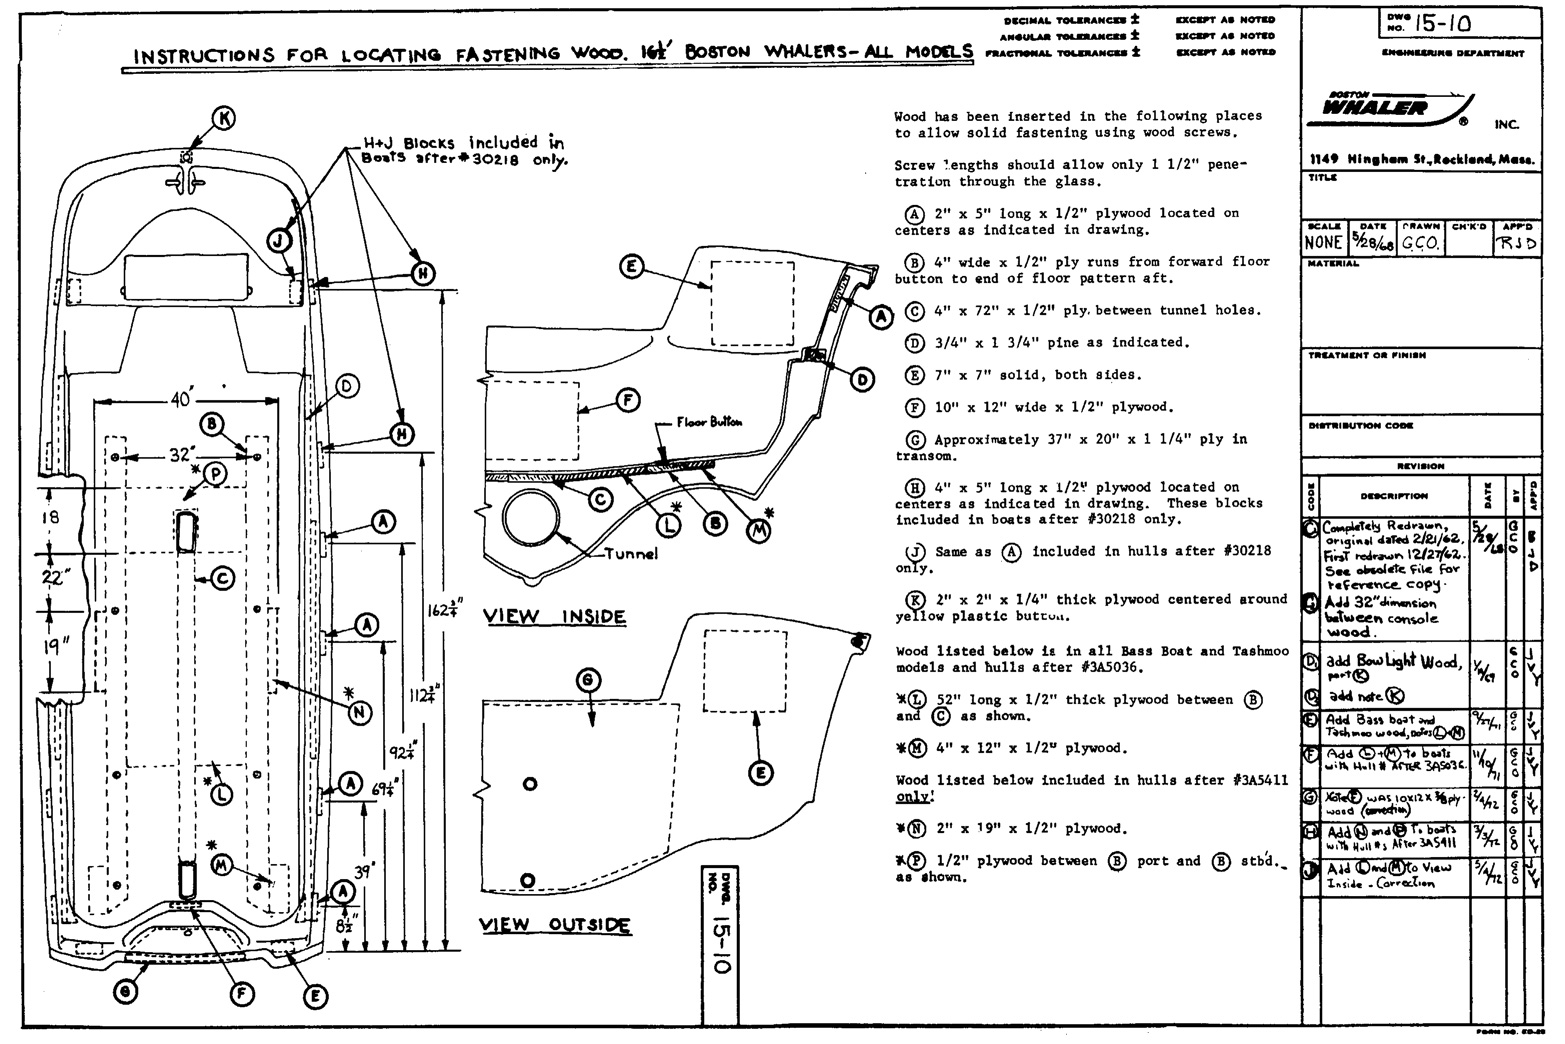 shaw box hoist wiring diagram 29 wiring diagram images wiring diagrams sewacar co Shaw-Box 700 Hoist Wiring-Diagram Yale Crane Wire Diagram